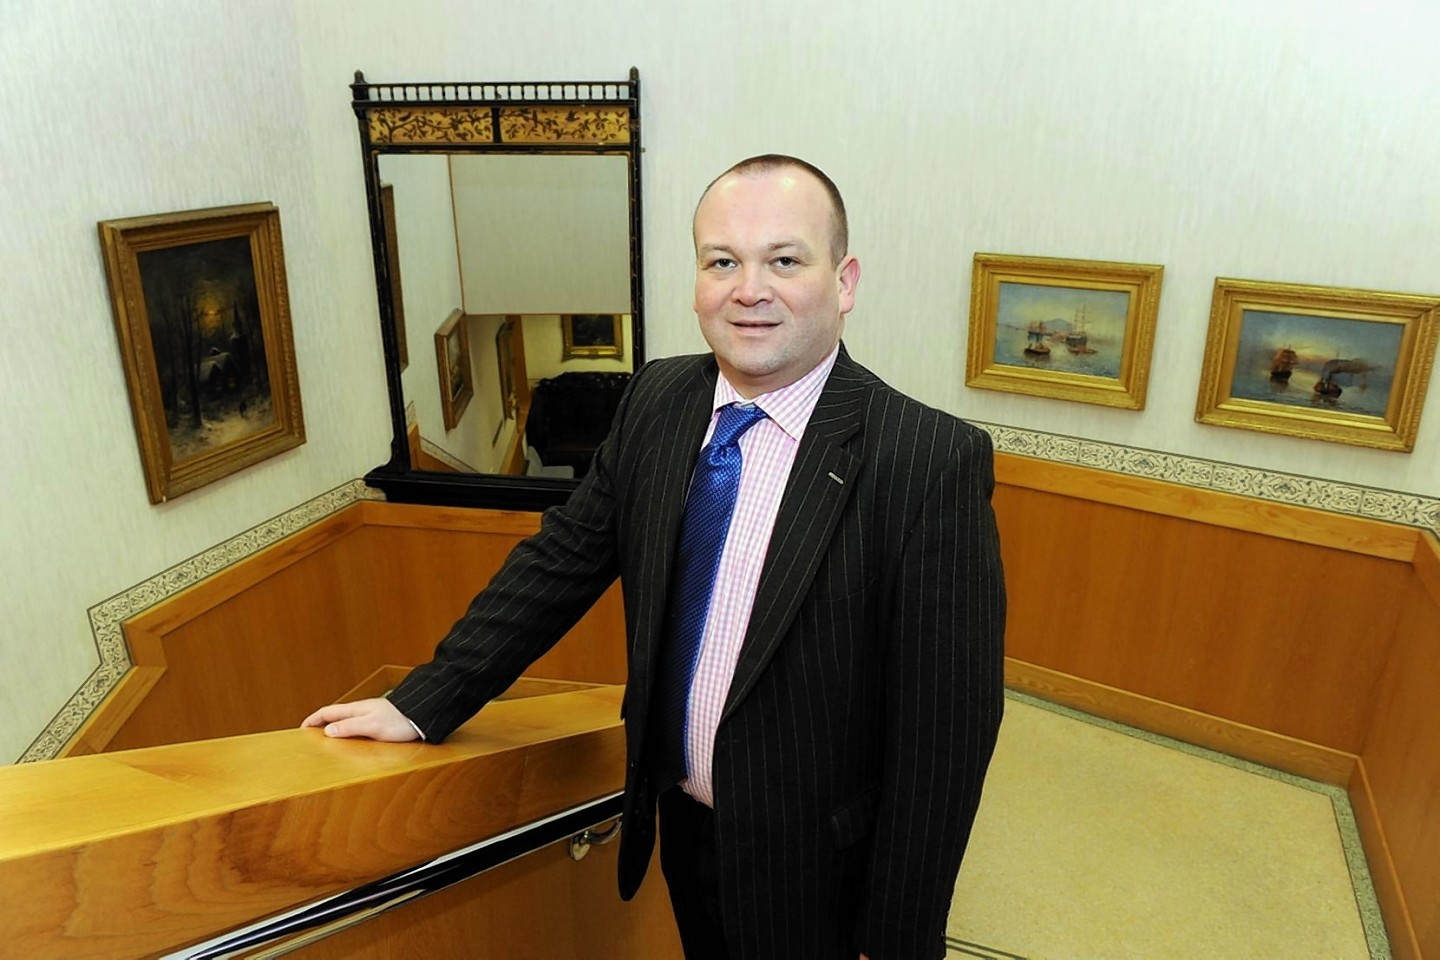 Laurence Findlay of Moray Council